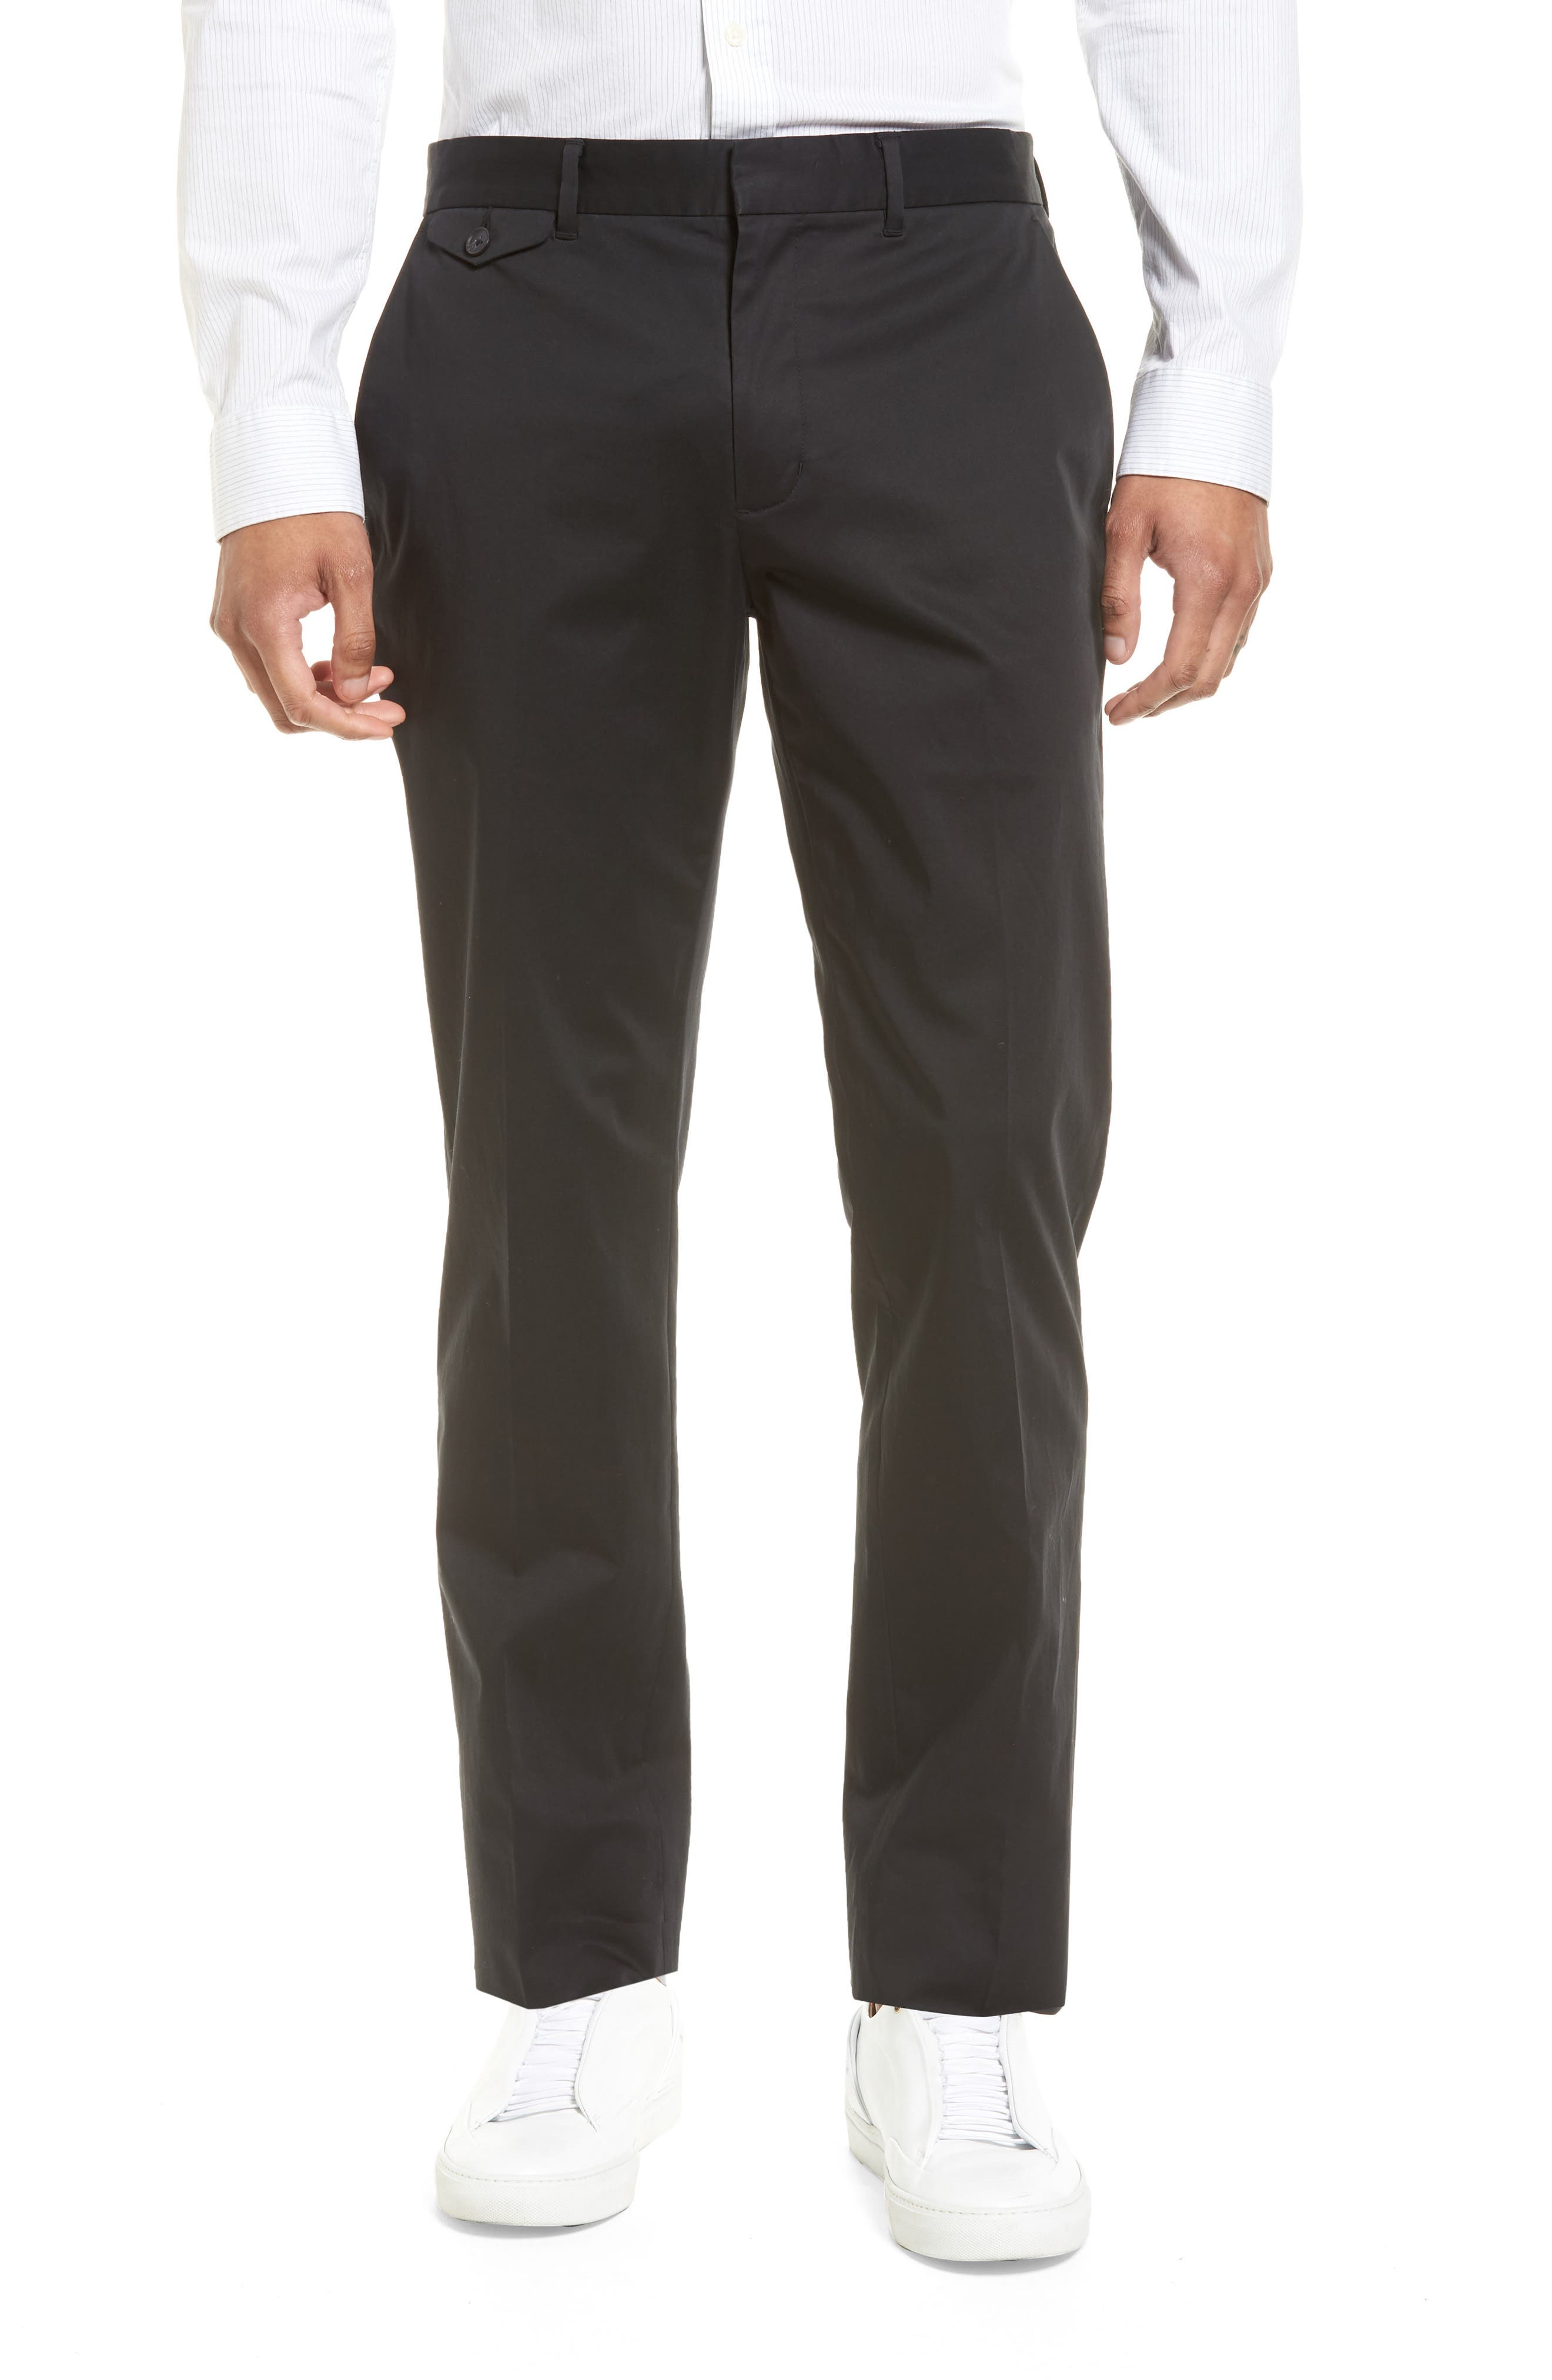 Officer Flat Front Chino Pants,                         Main,                         color, 001